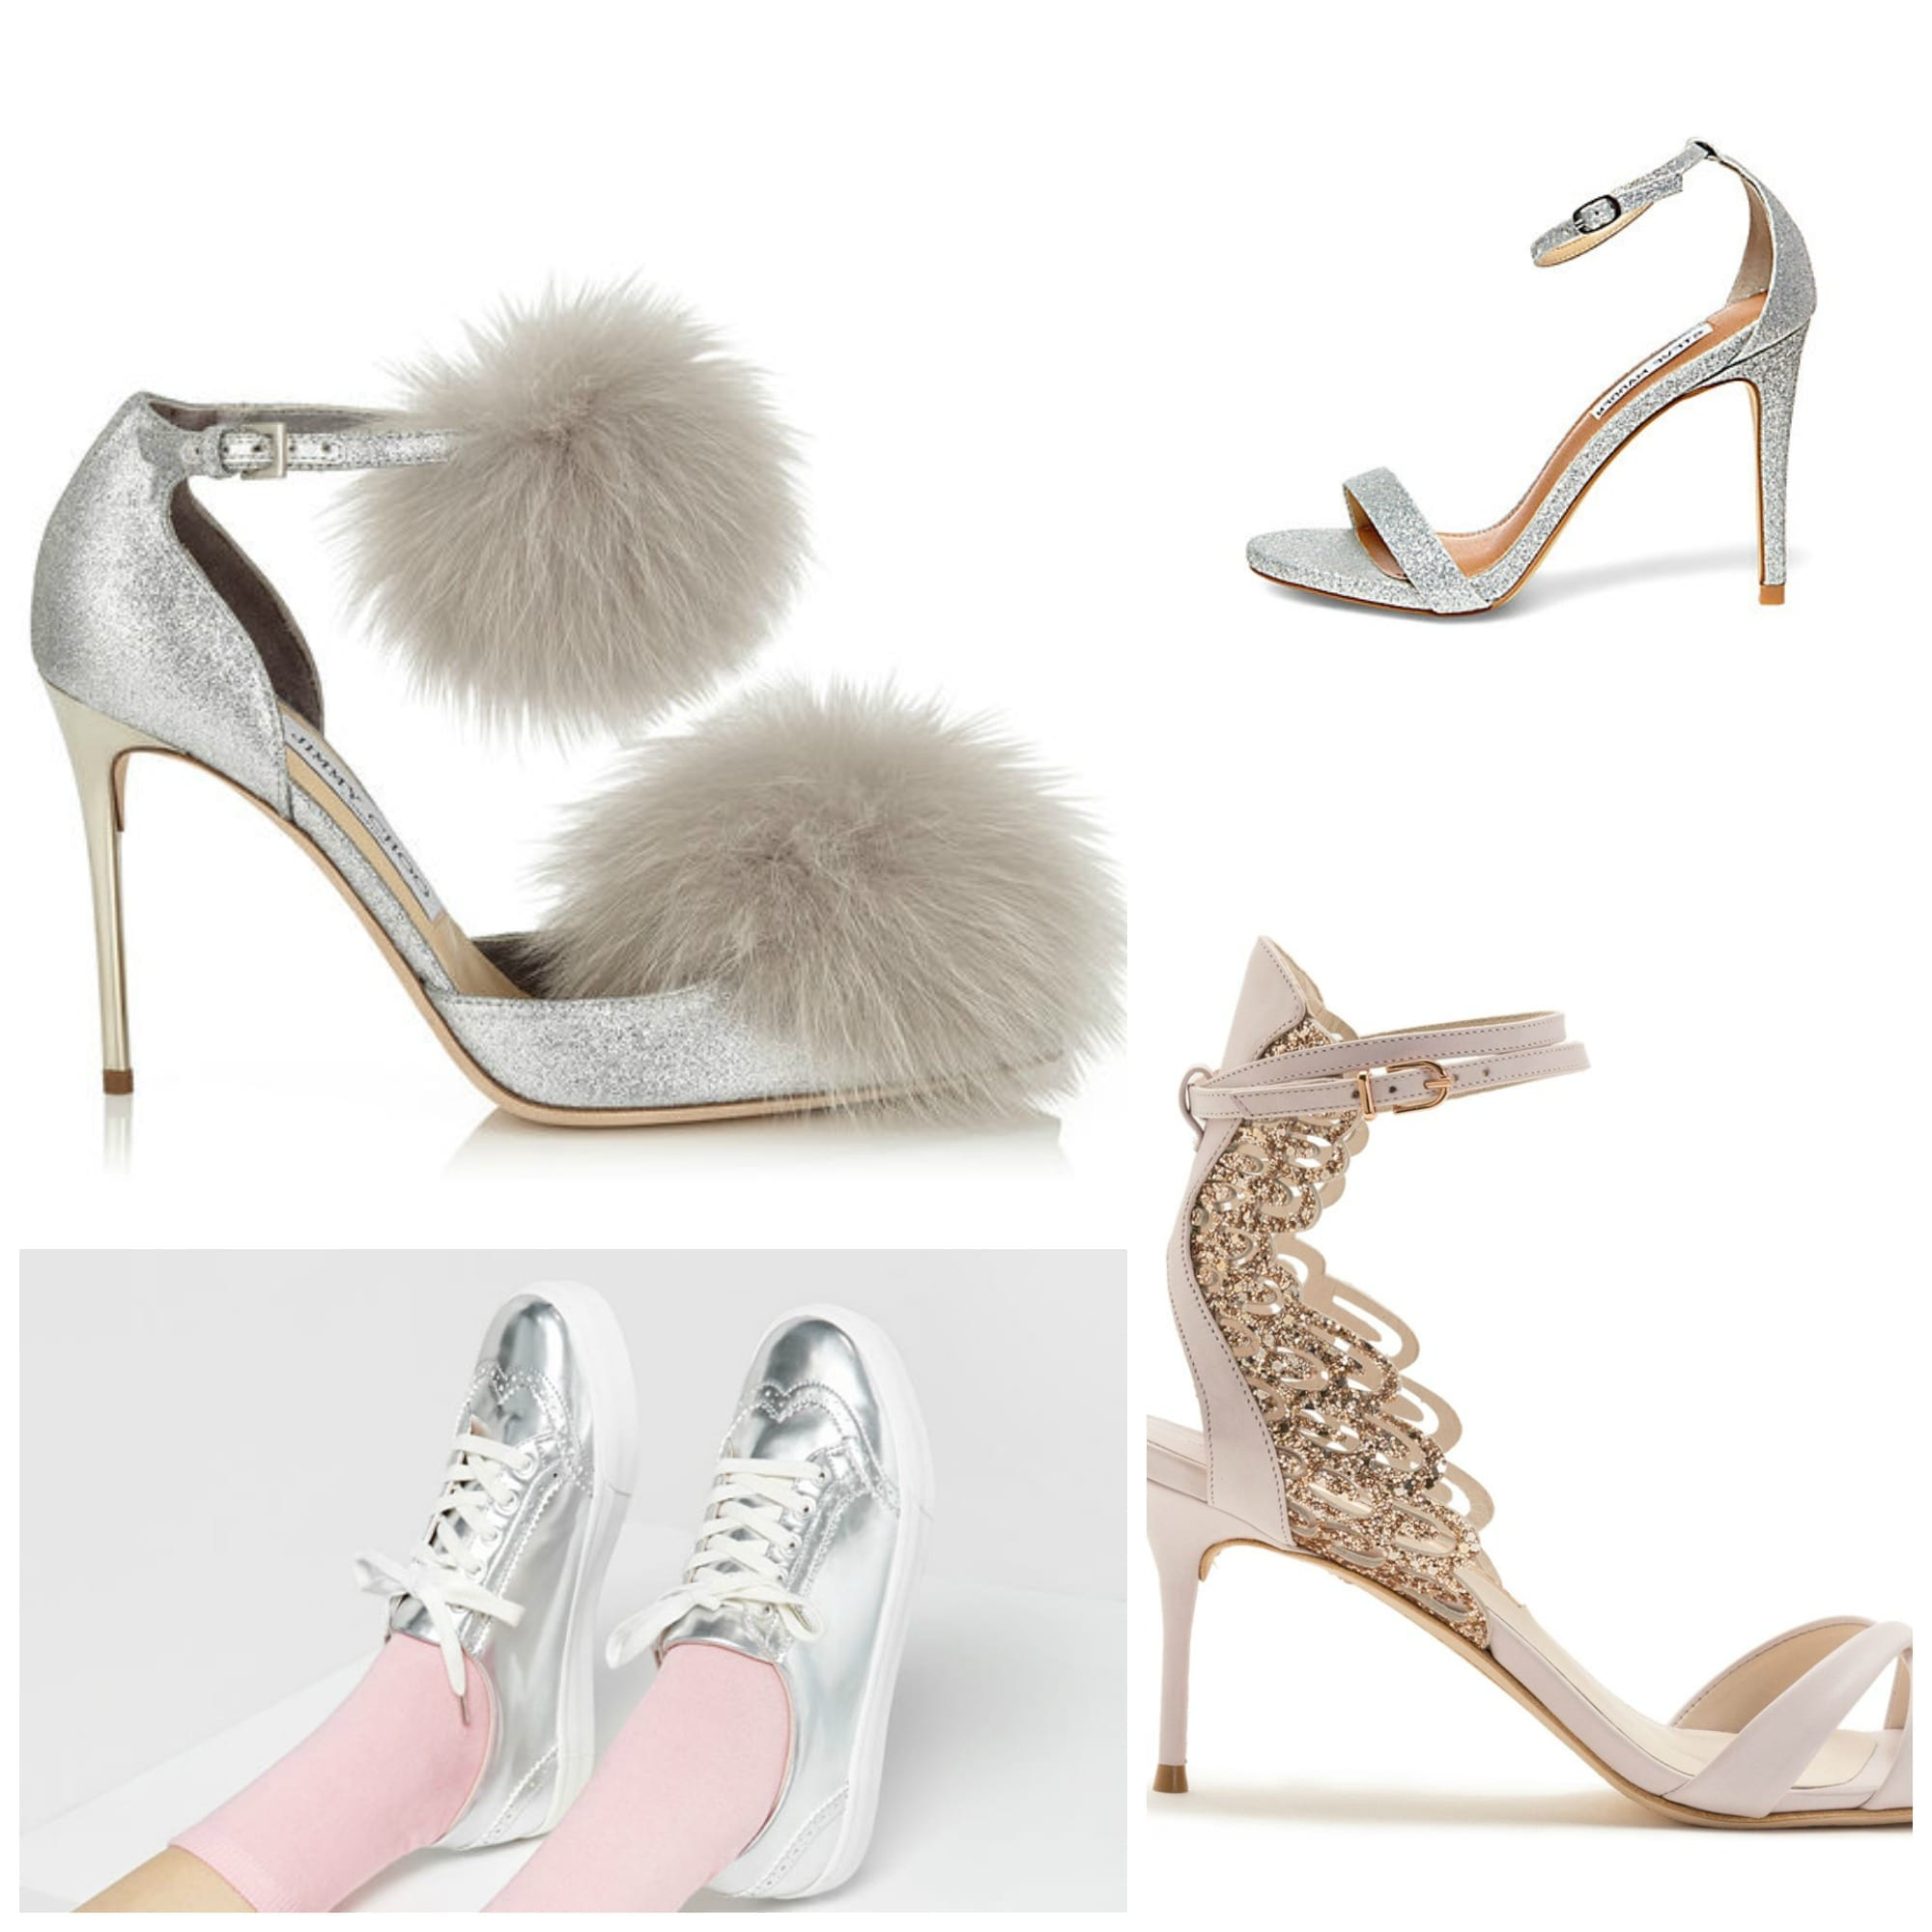 che scarpe vanno di moda, sophia webster shoes, rockstud valentino, glitter scarpe, theladycracy.it, elisa bellino, fashion blogger italiane, fashion blog italia